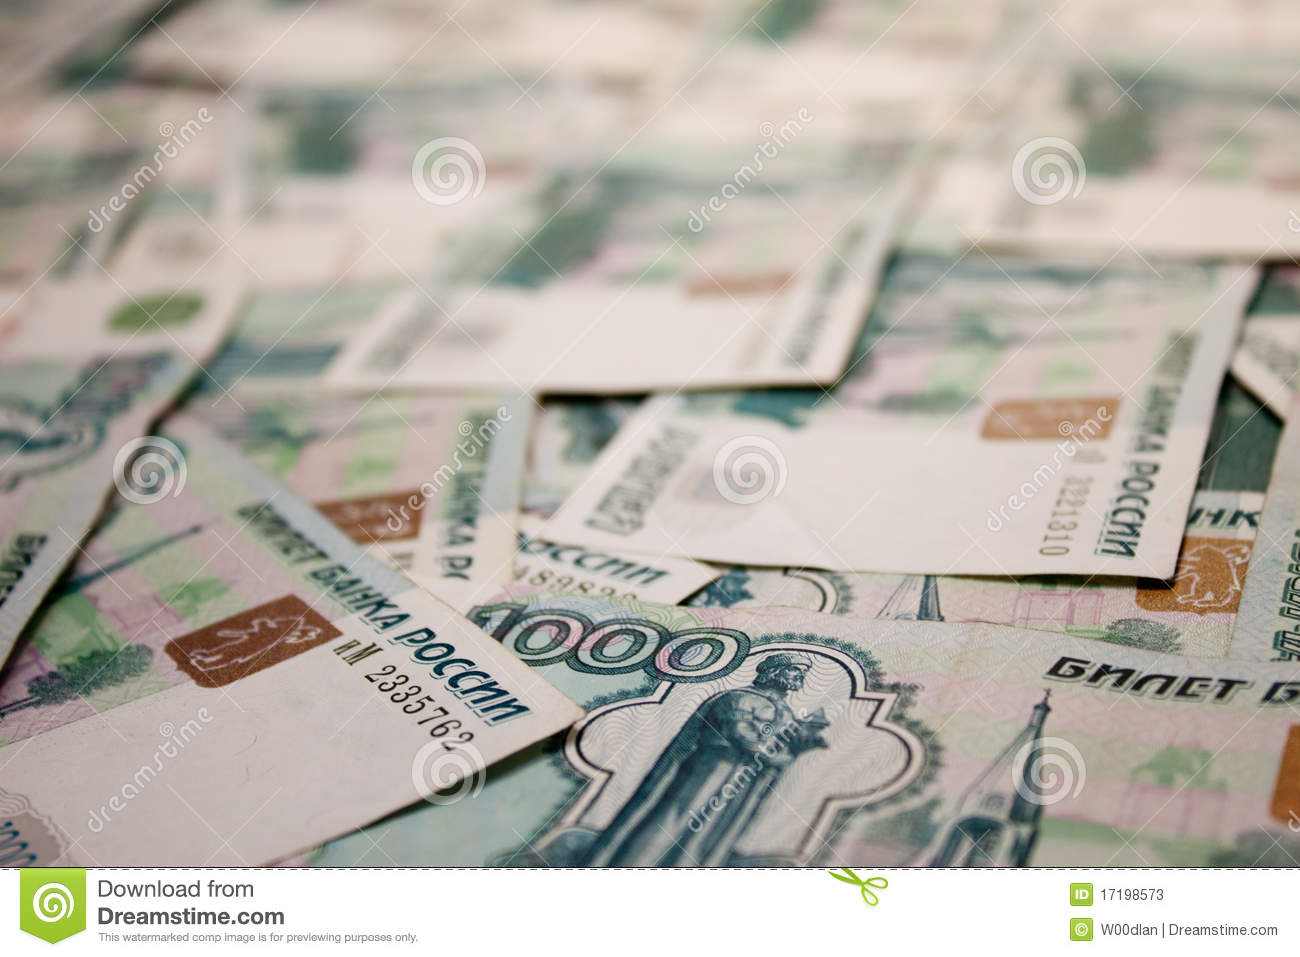 five thousand rubles for registering in a casino